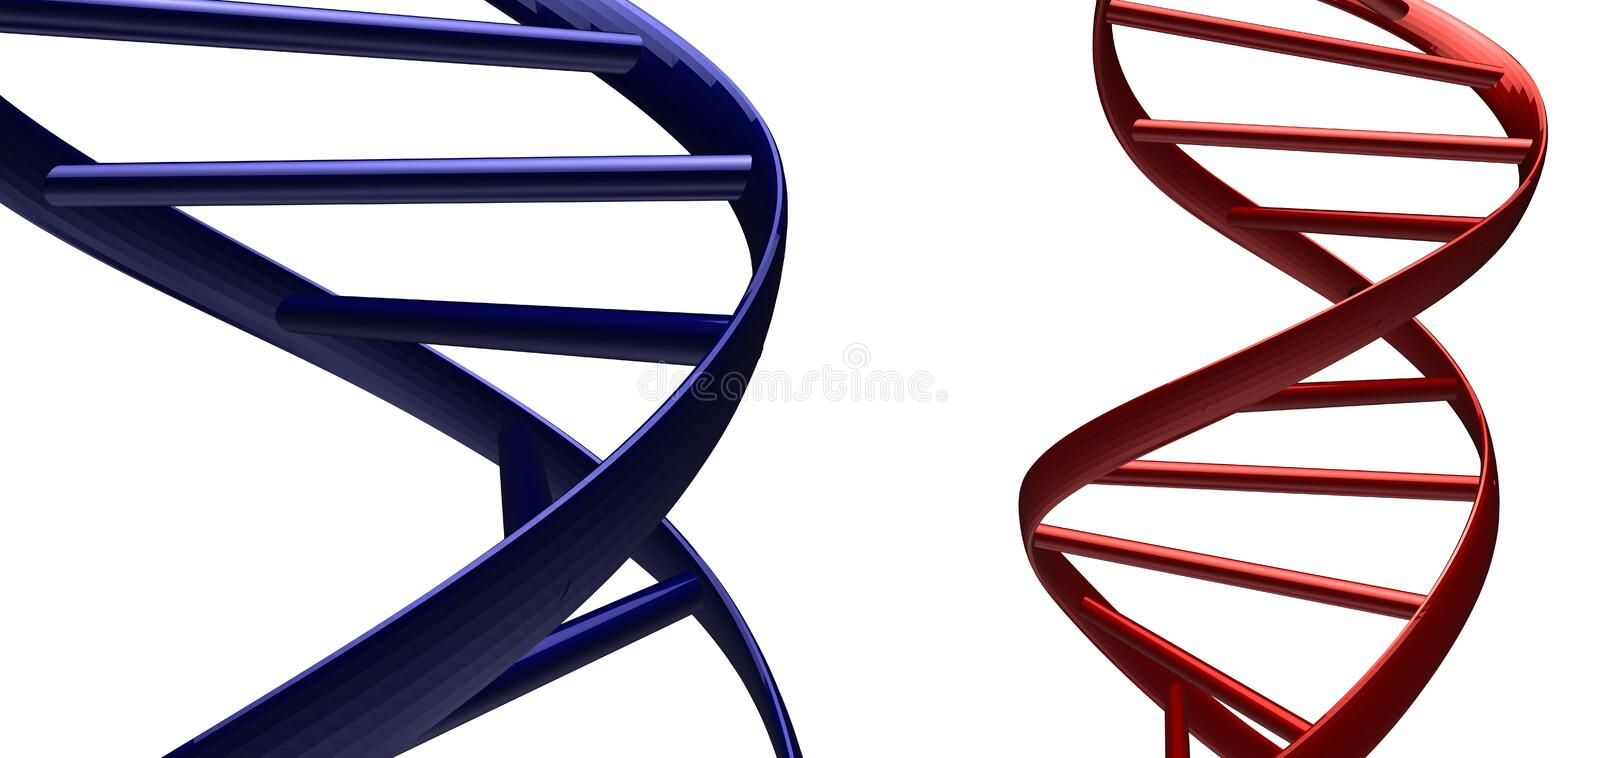 Red And Blue Dna Abstract Stock Photo